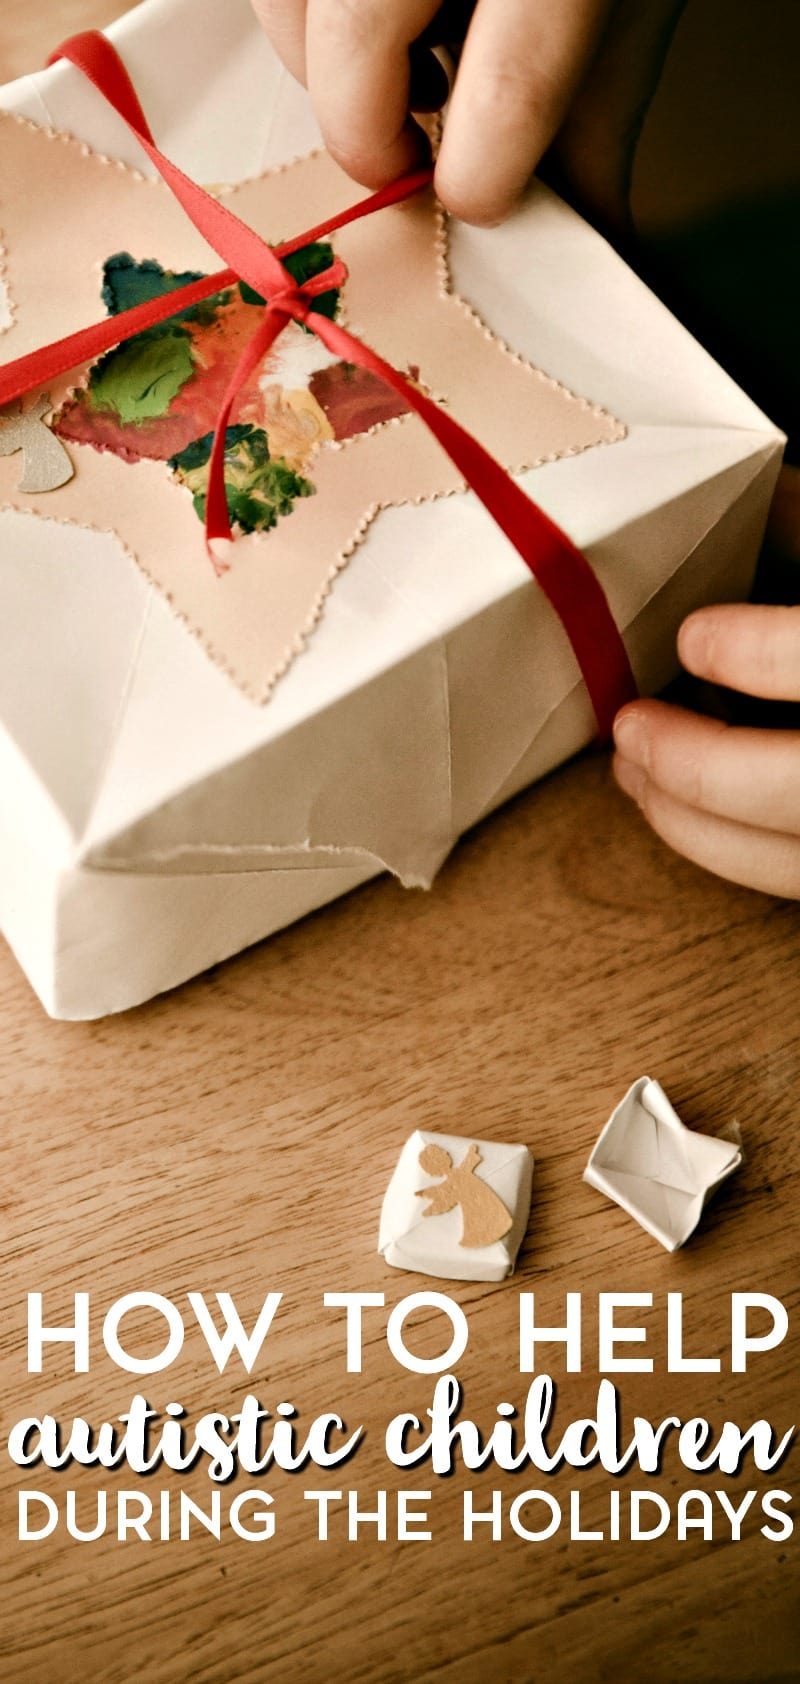 tips-and-advice-for-how-to-help-autistic-children-during-the-holidays